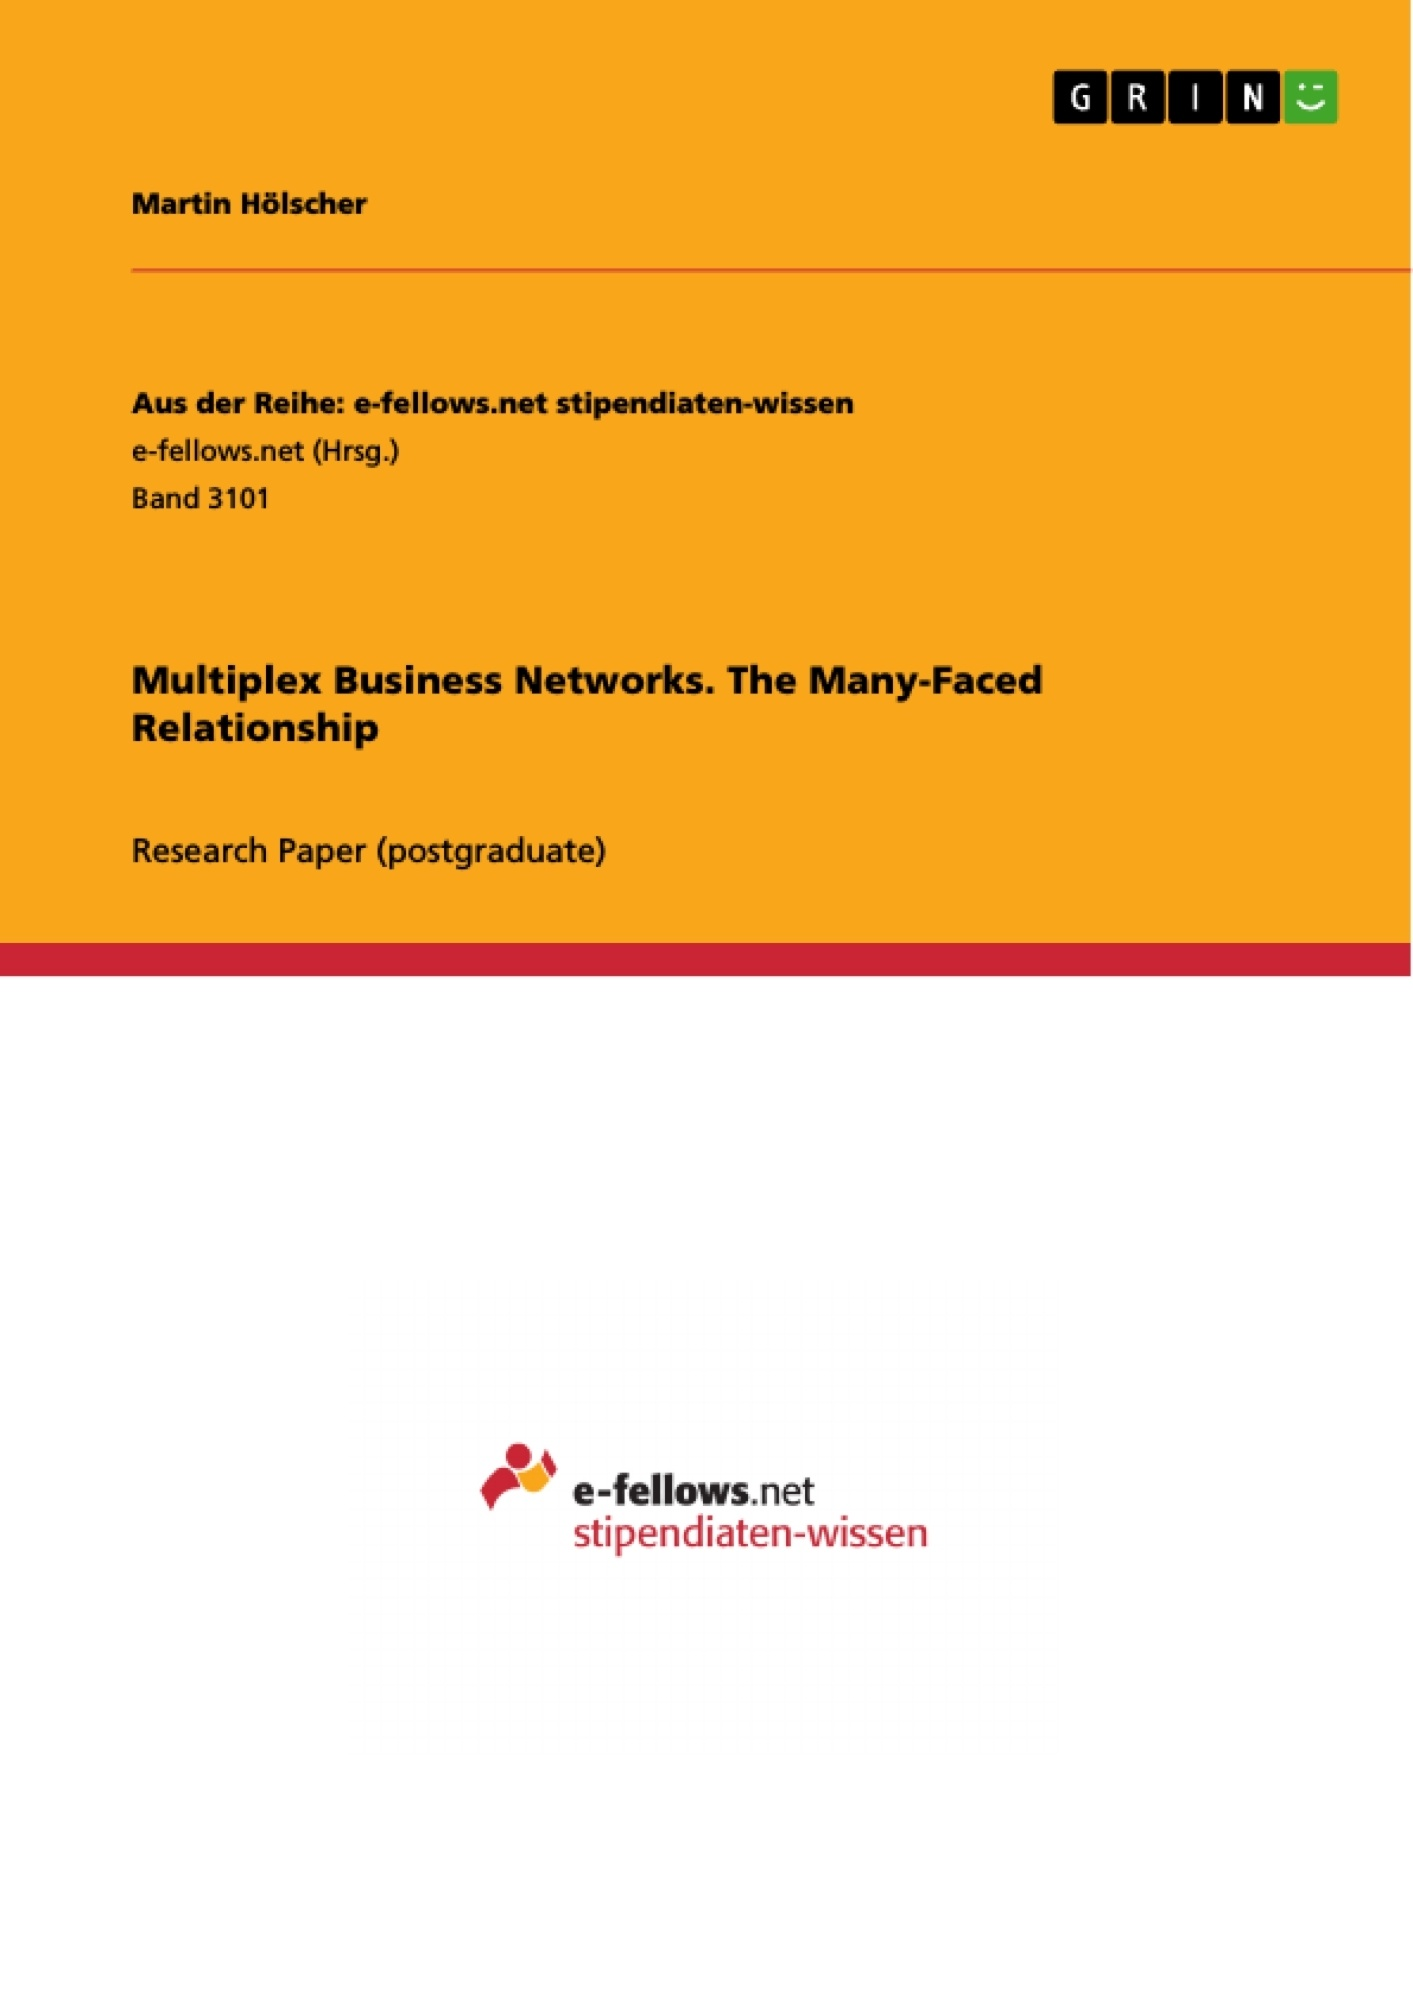 Title: Multiplex Business Networks. The Many-Faced Relationship